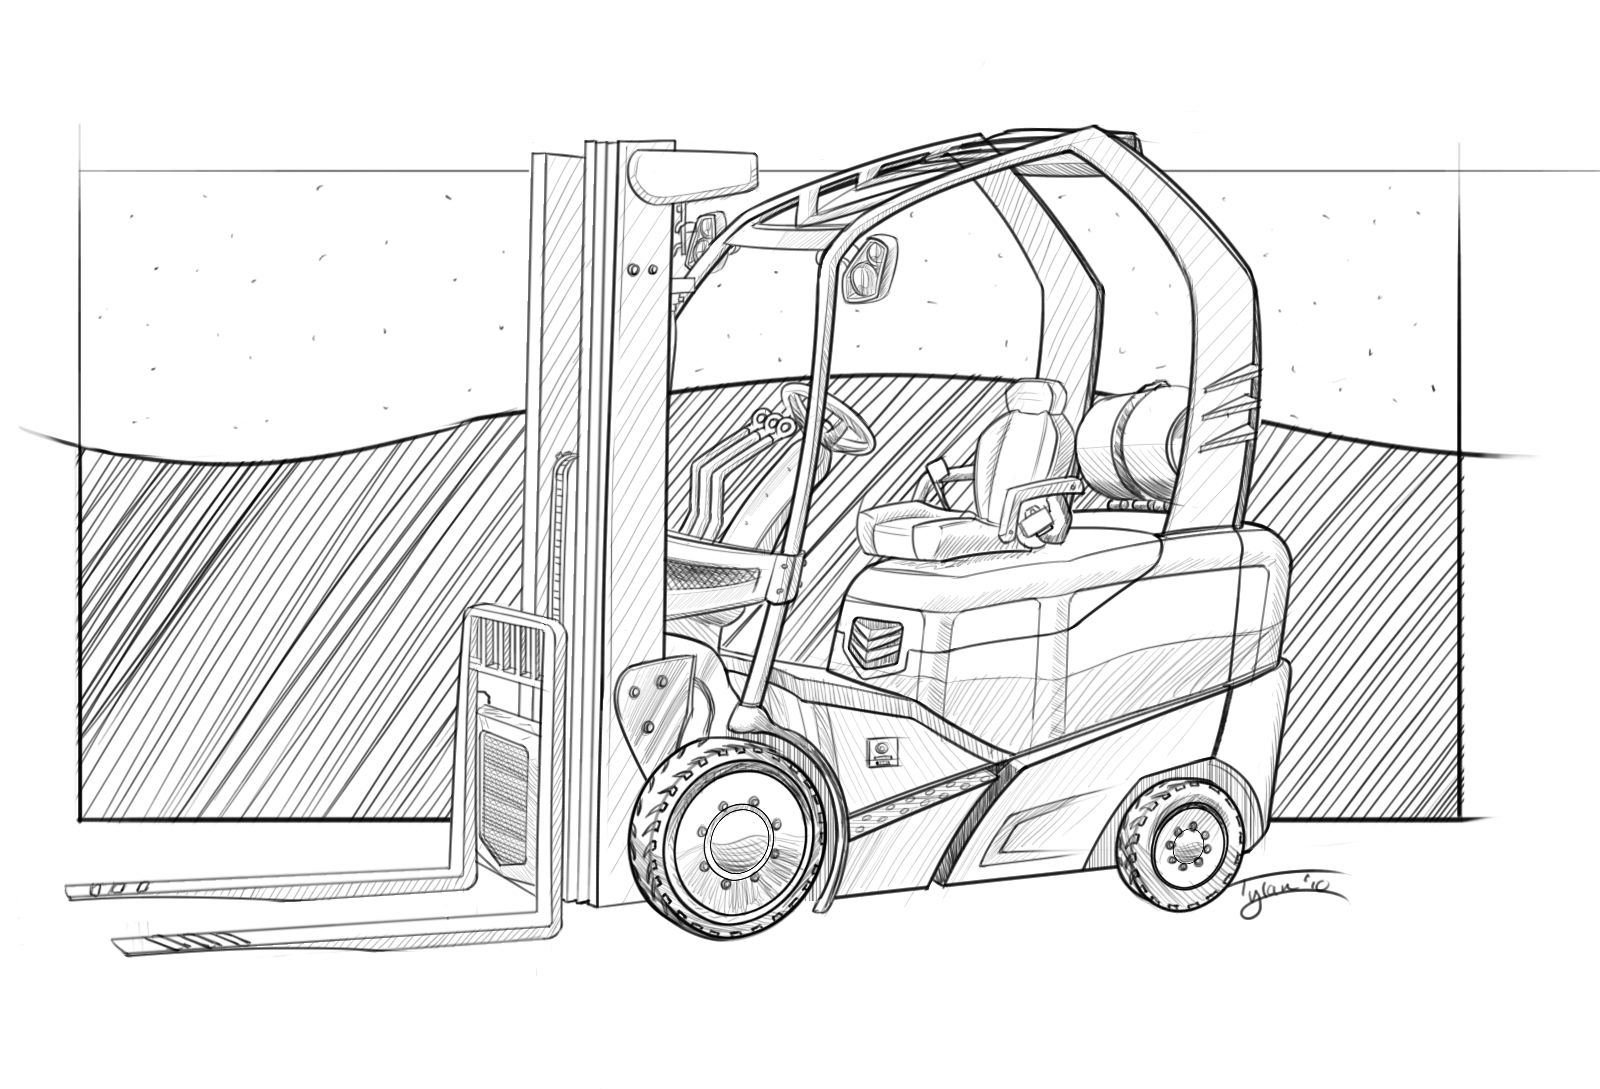 Lifted Chevy Truck Sketch Templates